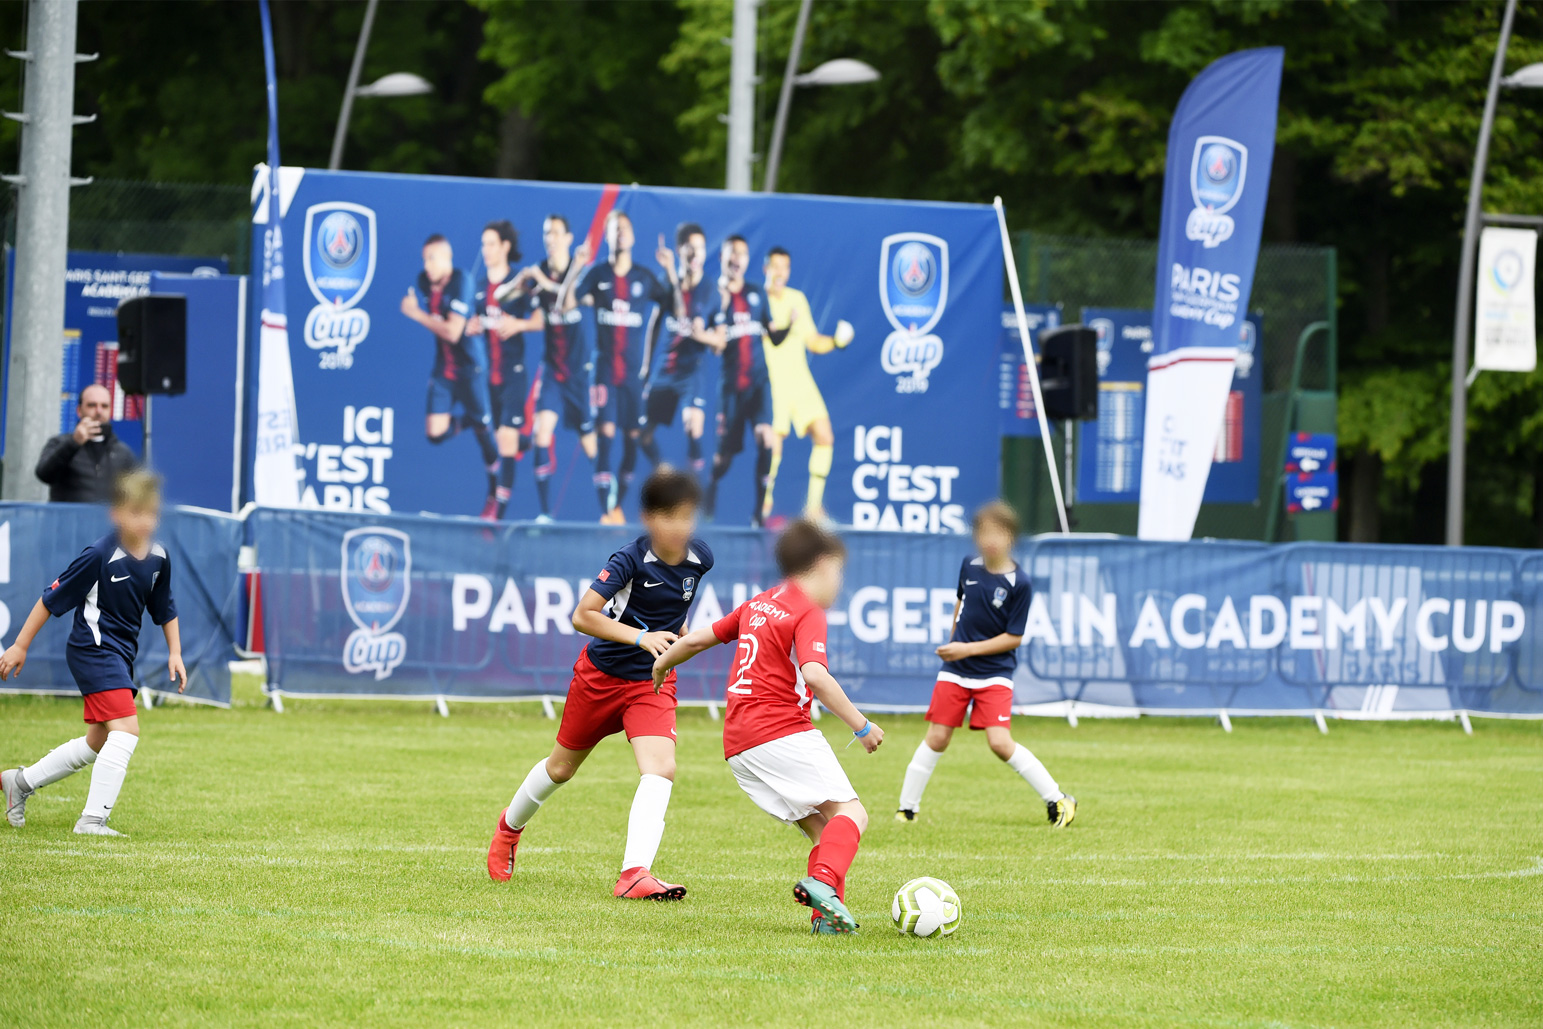 PSG_Academy_Cup_19_05